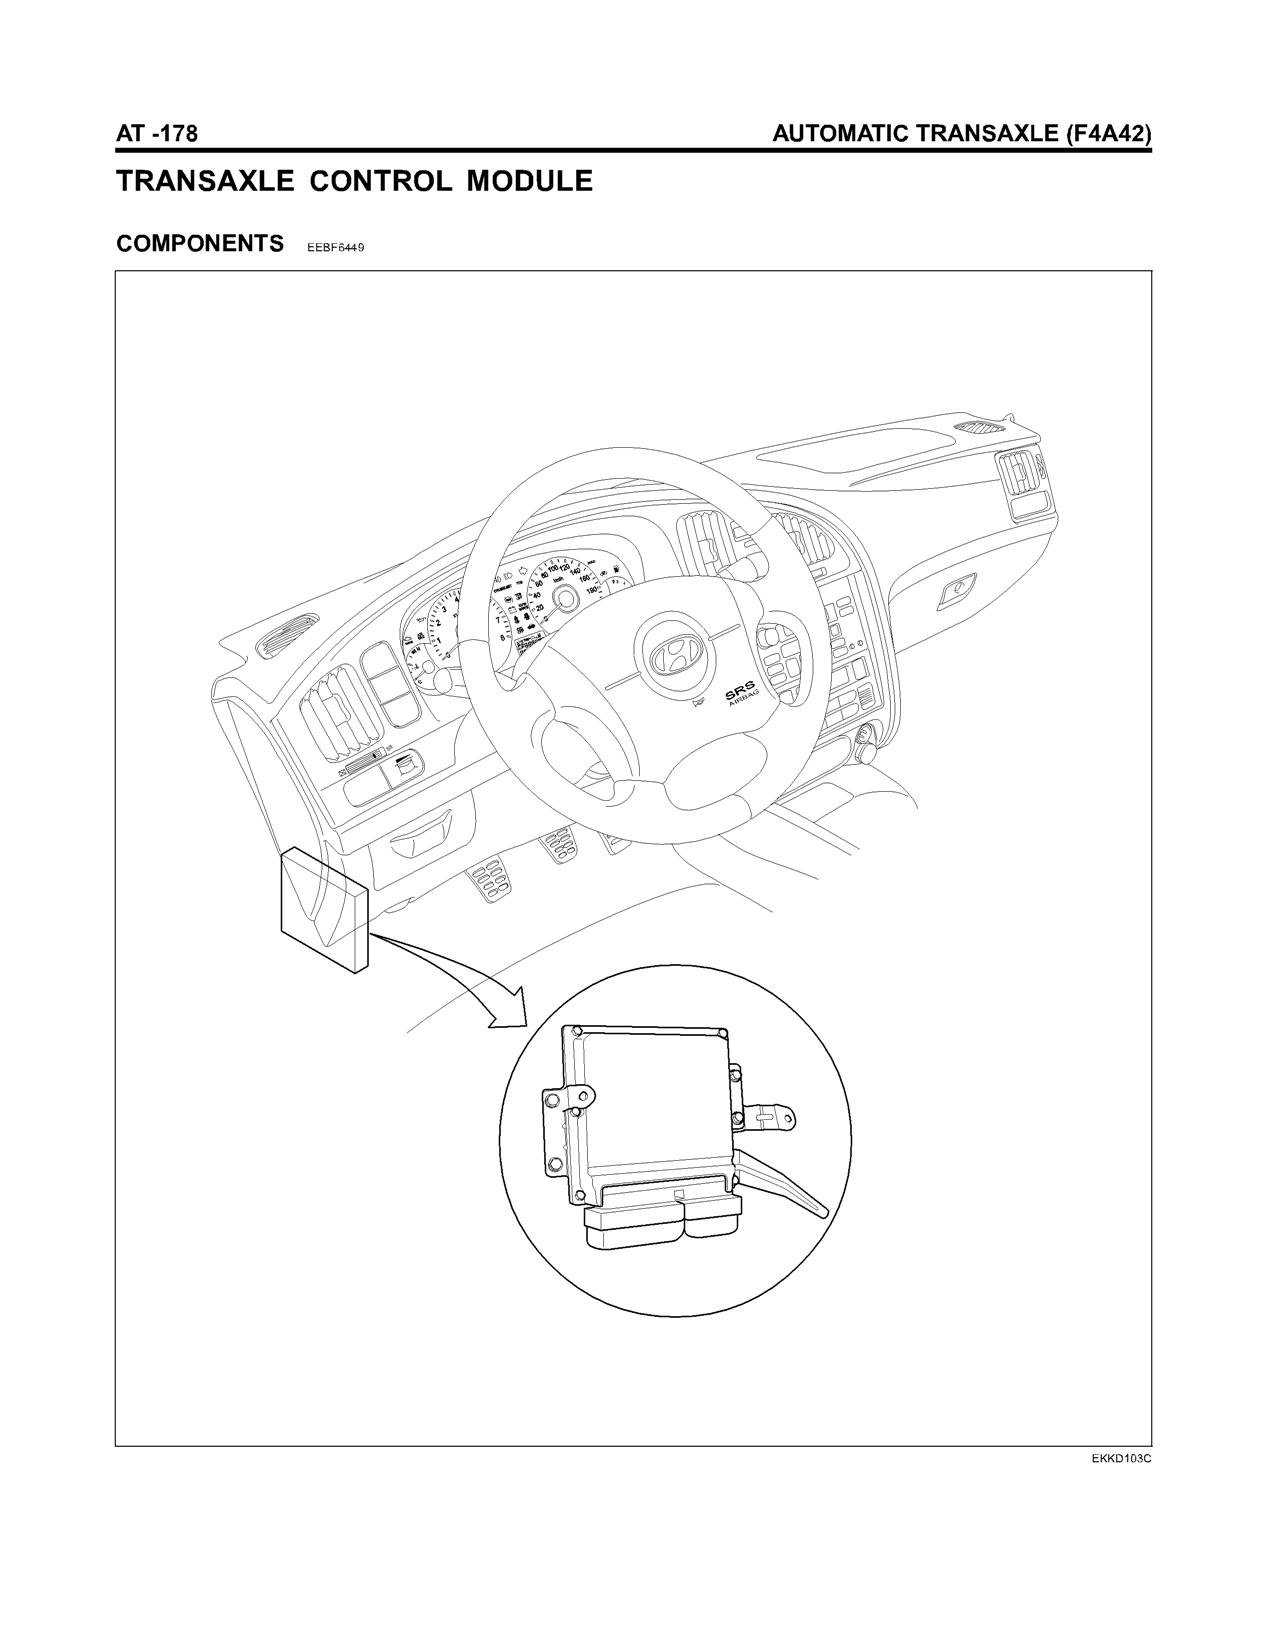 2000 Hyundai Sonata Fuse Box Custom Project Wiring Diagram 2007 2004 Santa Fe Engine Within